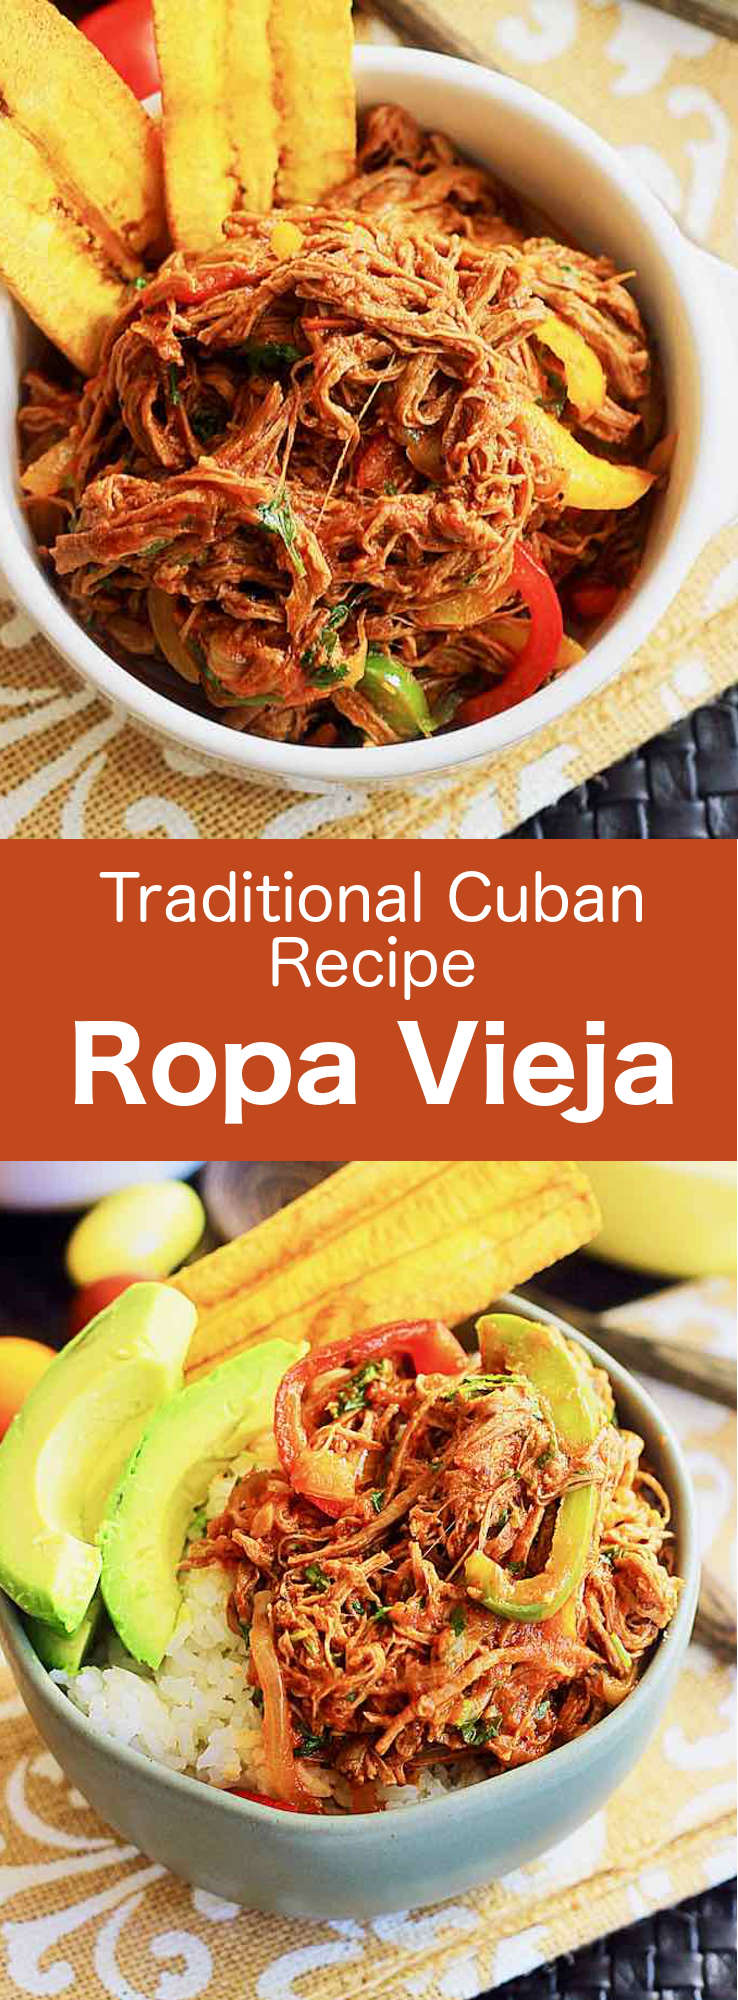 Ropa vieja which consists of shredded beef slow-cooked with vegetables, is one of the national dishes of Cuba and is popular throughout Latin America. #Cuba #Cocktail #CubanRecipe #CubanDrink #Caribbean #CaribbeanDrink #WorldCuisine #196flavors